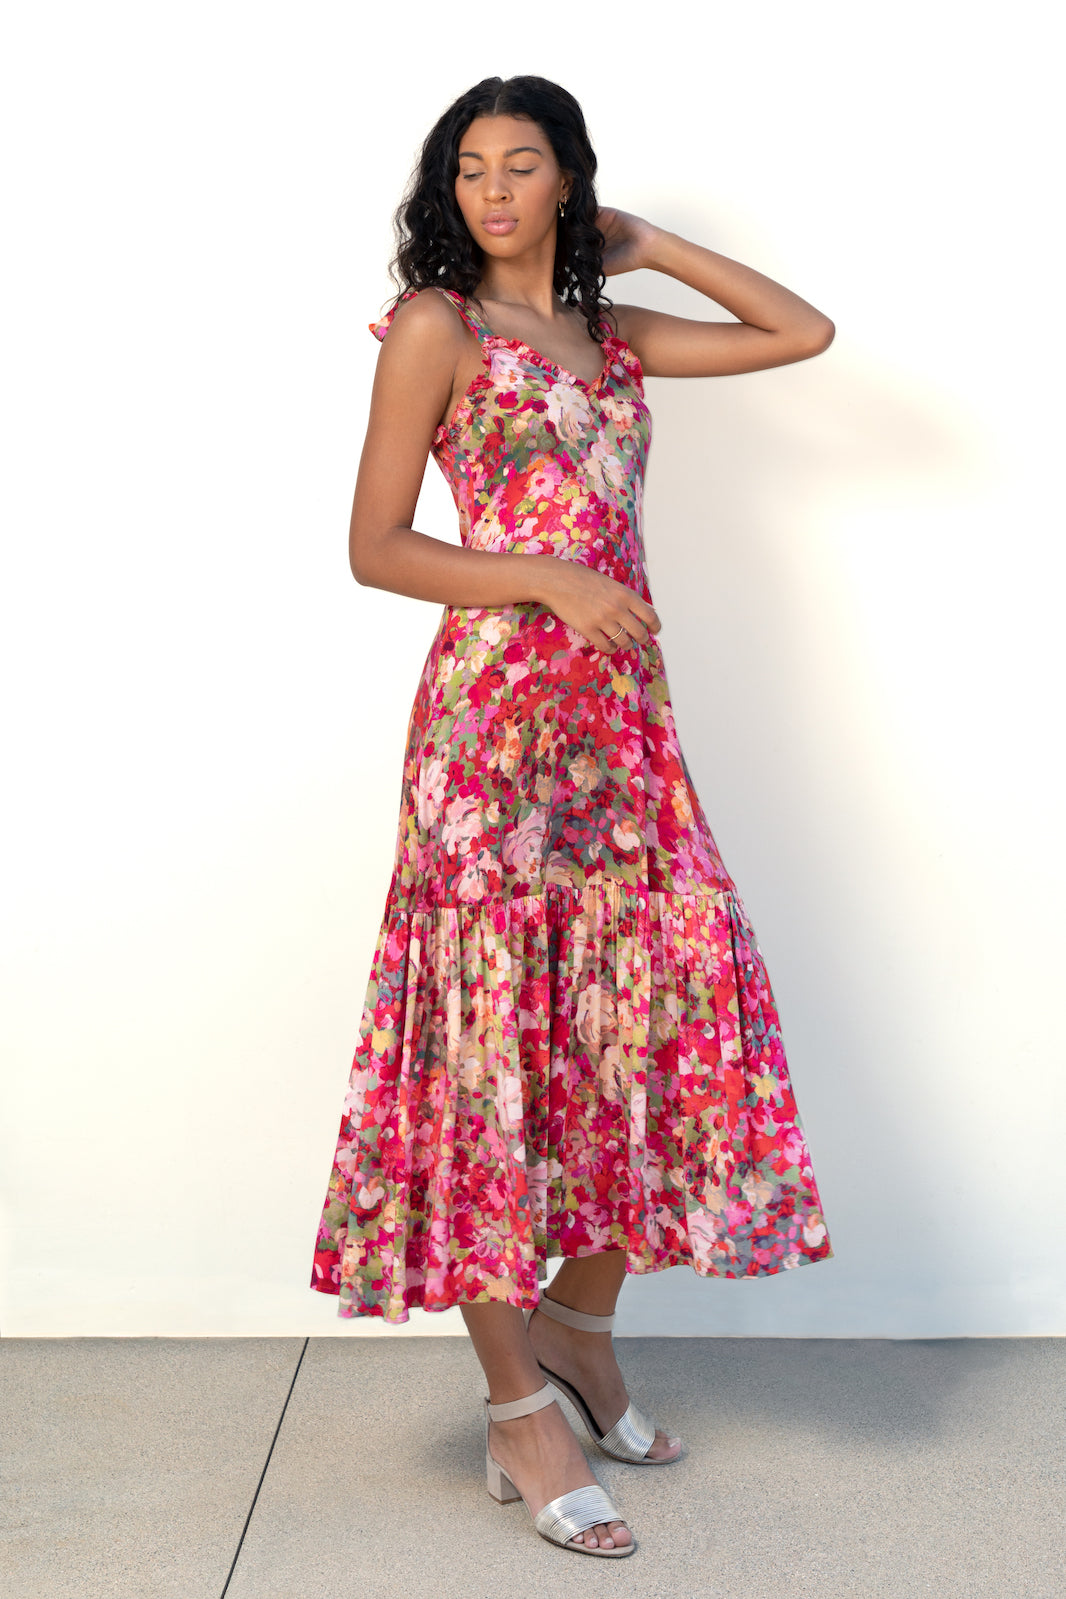 Model wears Finchley Camino's red floral printed maxi length dress with large ruffle hem